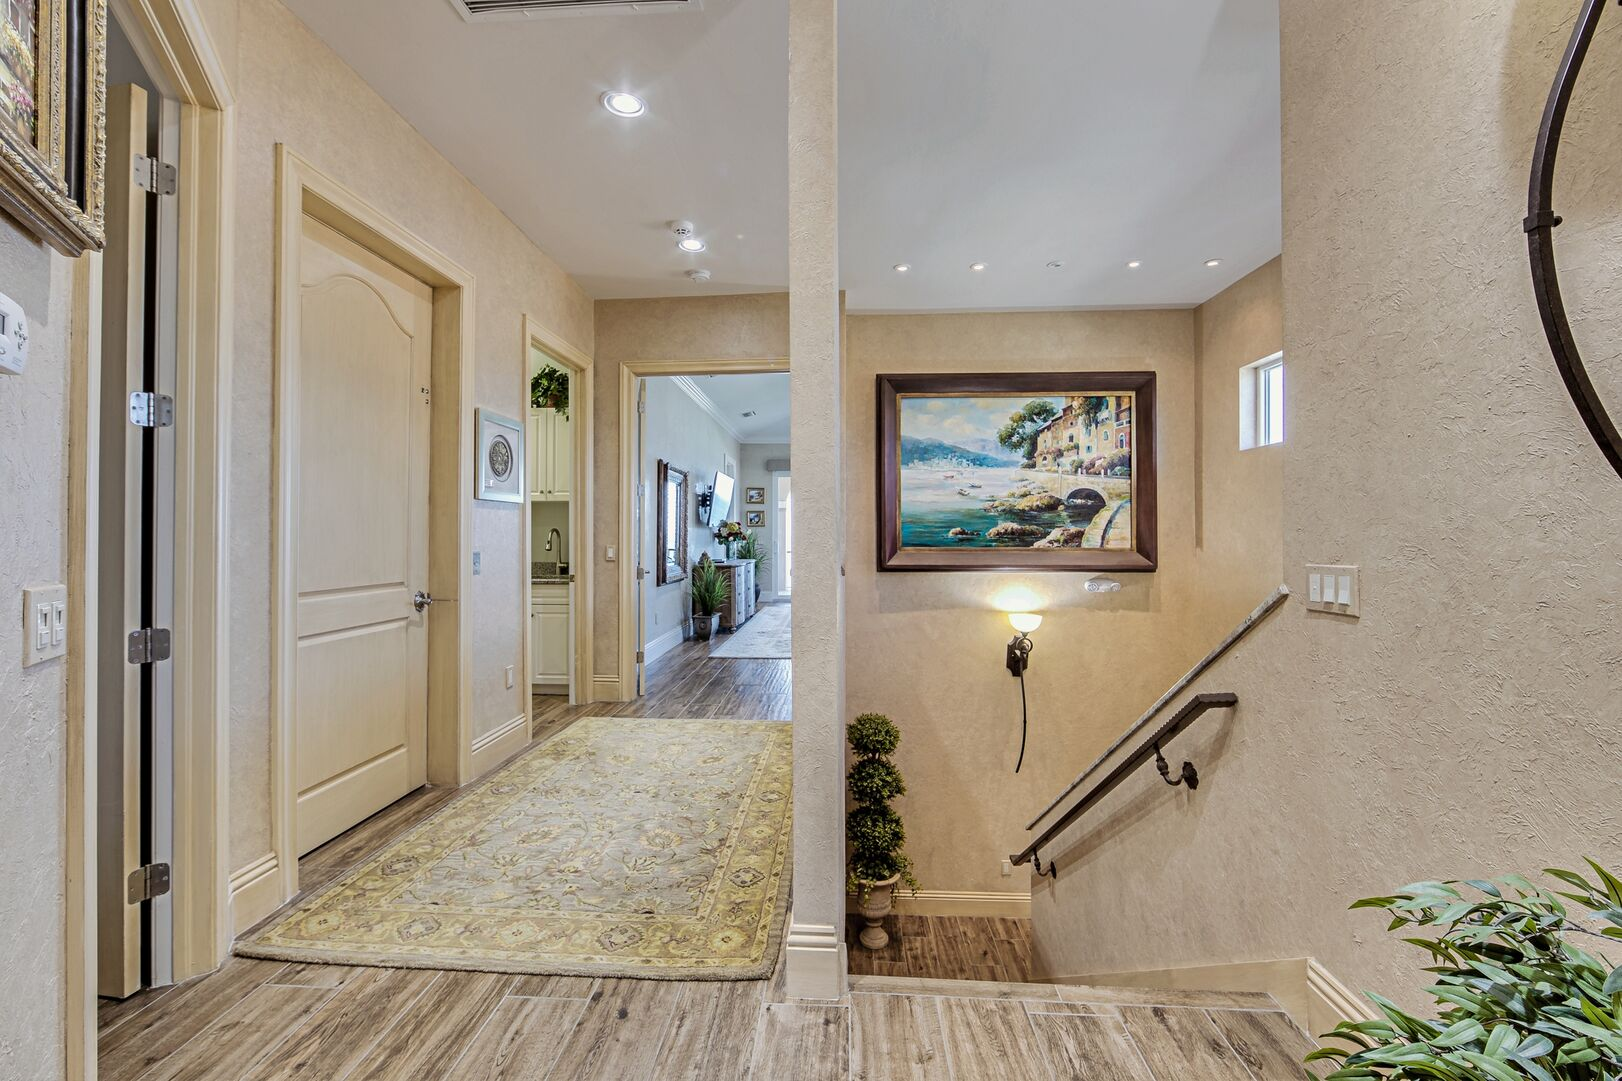 Picture of the Upstairs Hallway of Our Vacation Home in Fort Myers.